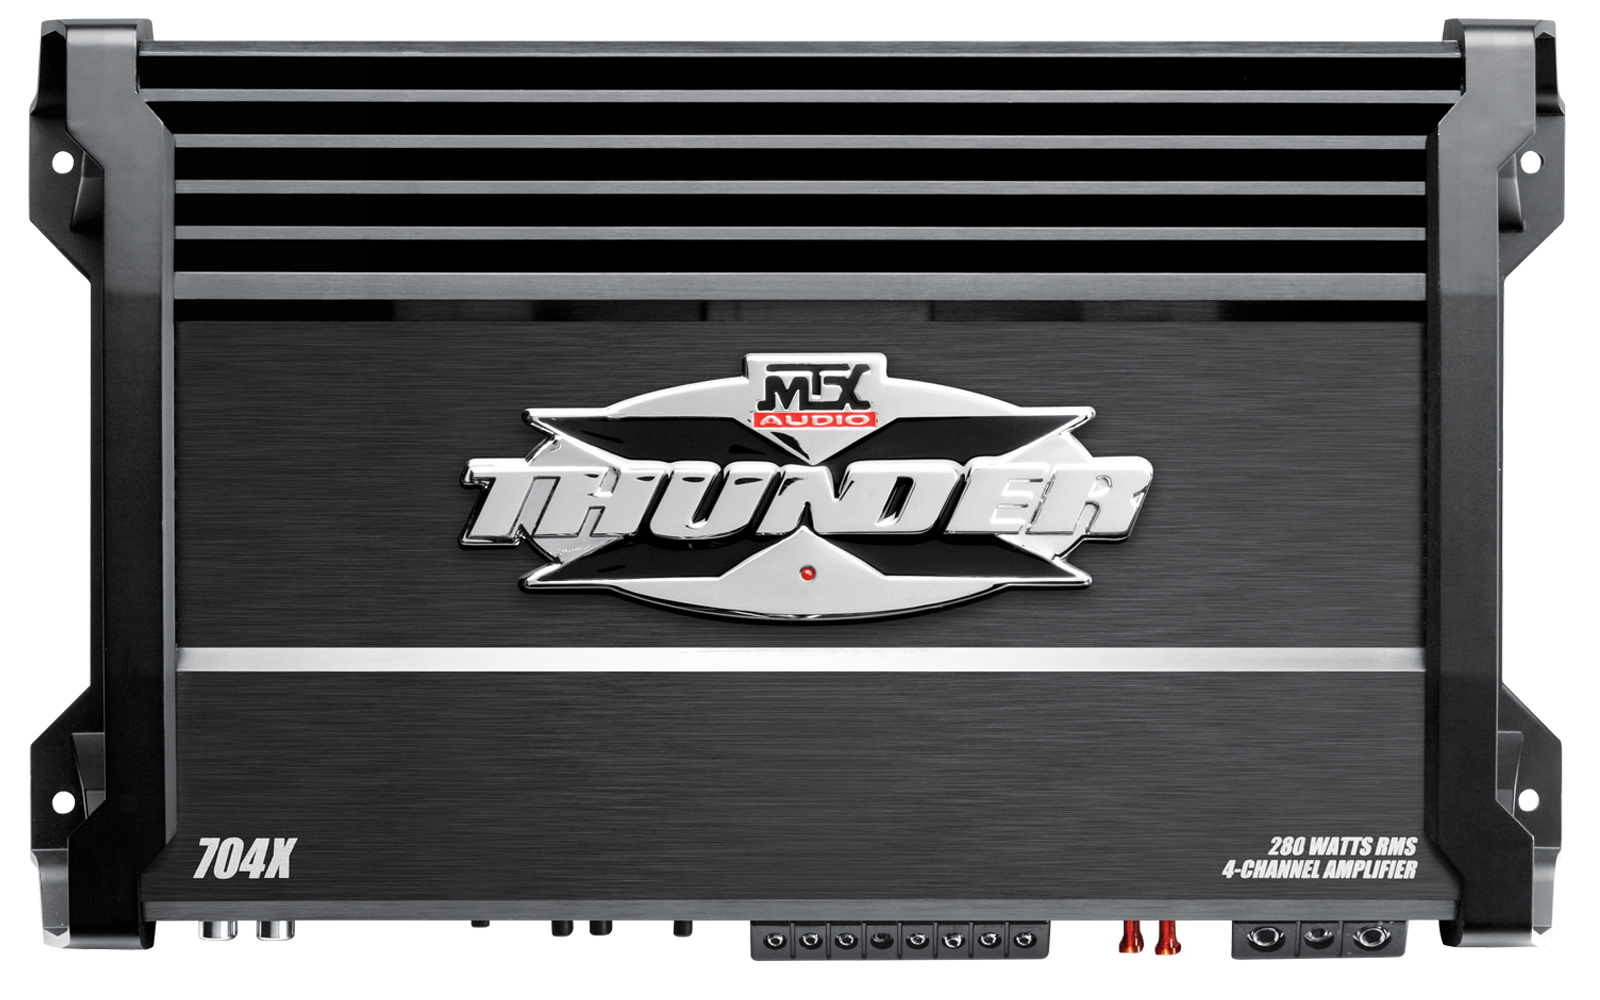 704x Xthunder  Channel Clab Amplifier Mtx Audio Serious About Sound